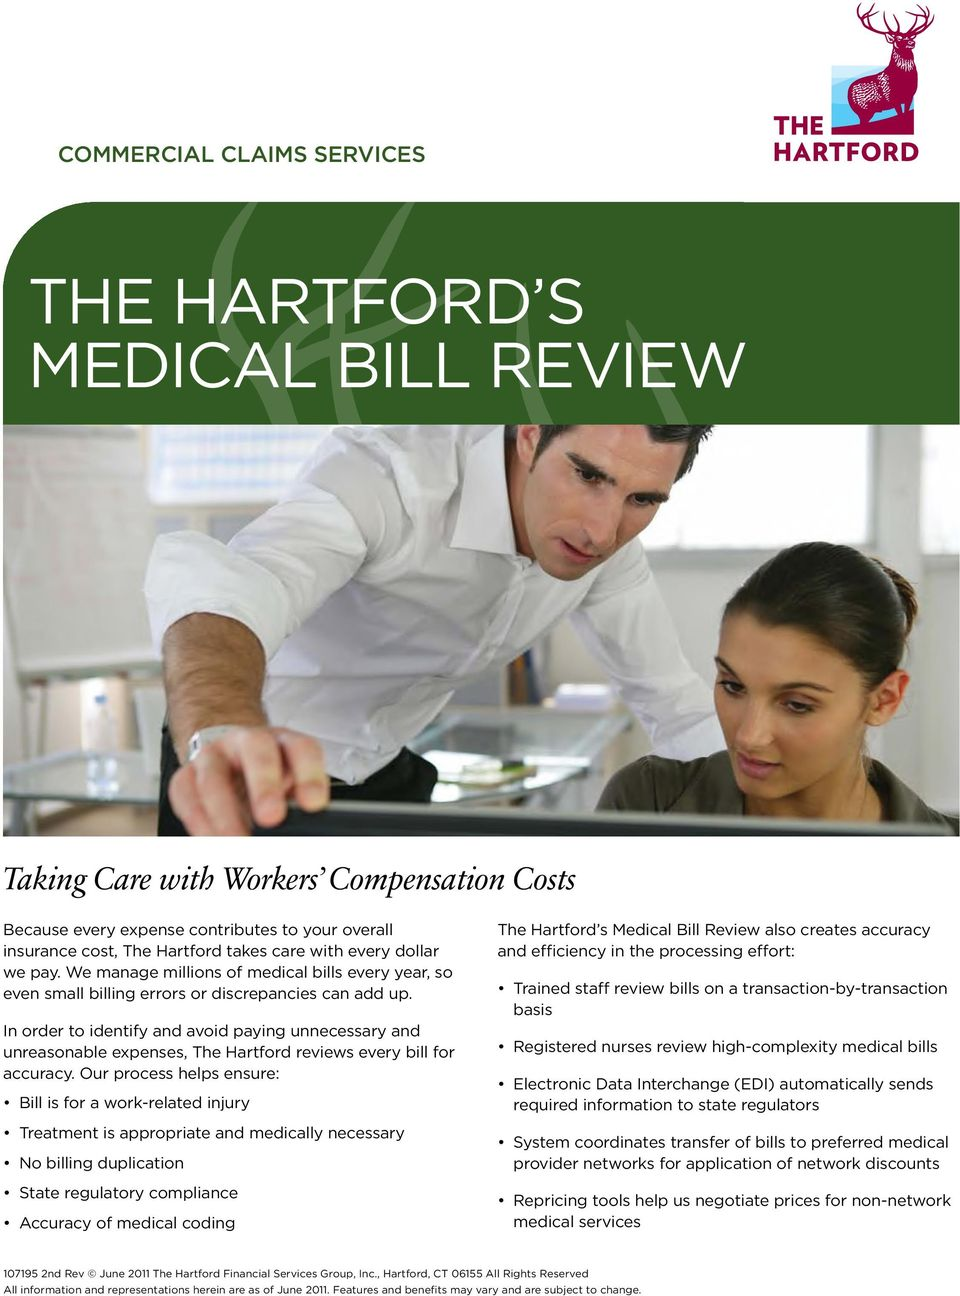 In order to identify and avoid paying unnecessary and unreasonable expenses, The Hartford reviews every bill for accuracy.